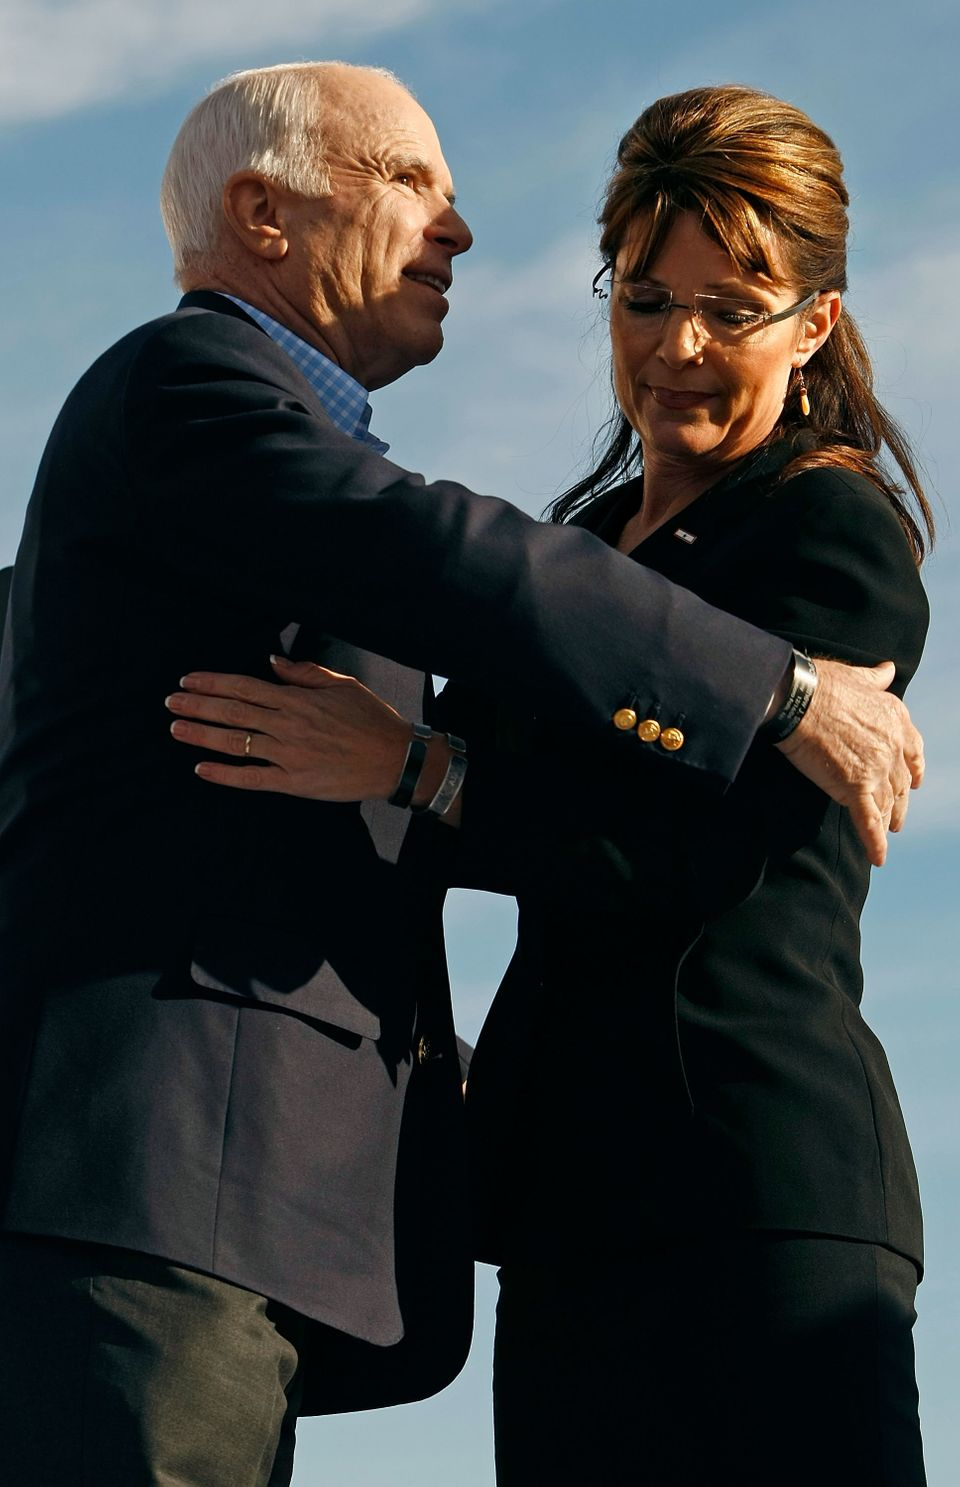 Republican presidential nominee John McCain embraces his running mate Sarah Palin during a campaign rally at the Green High S